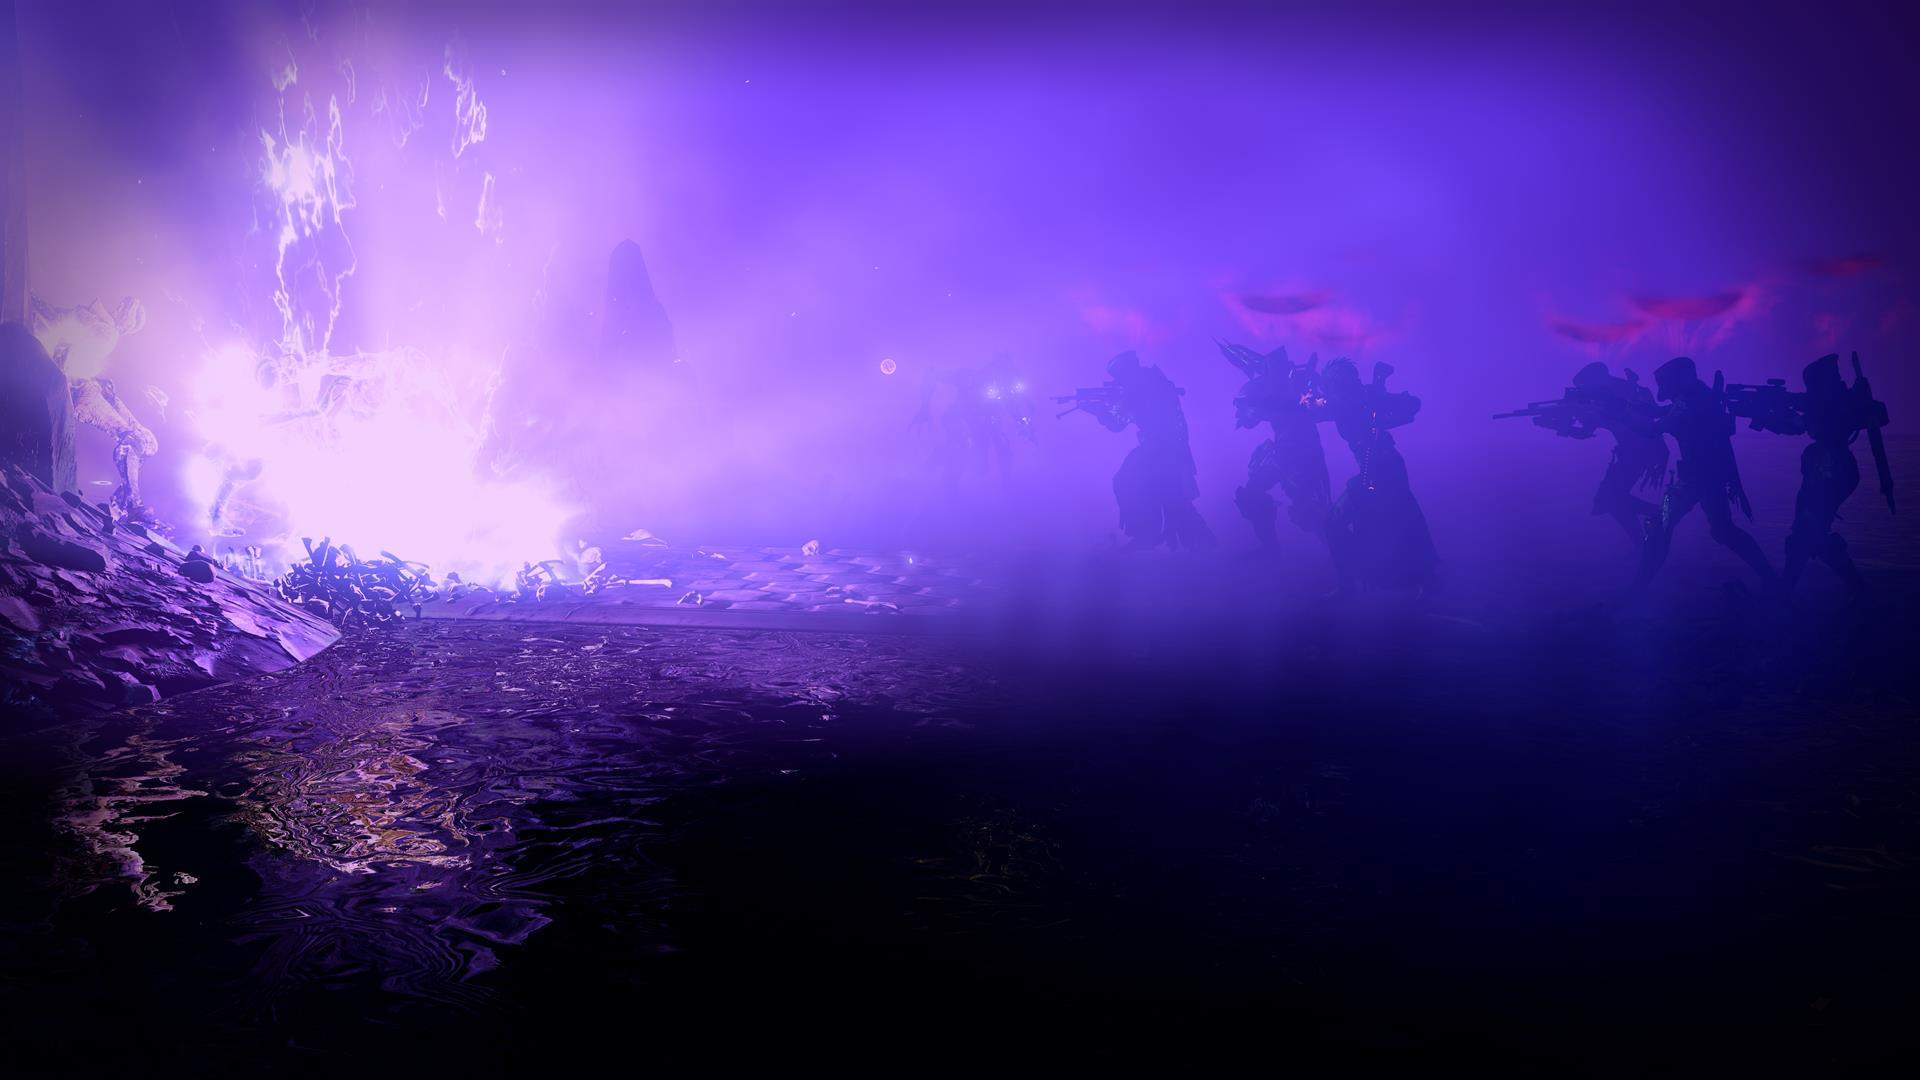 3d Glass Wallpapers For Desktop Hd Destiny The Dark Below Here S How To Grab Crota S End